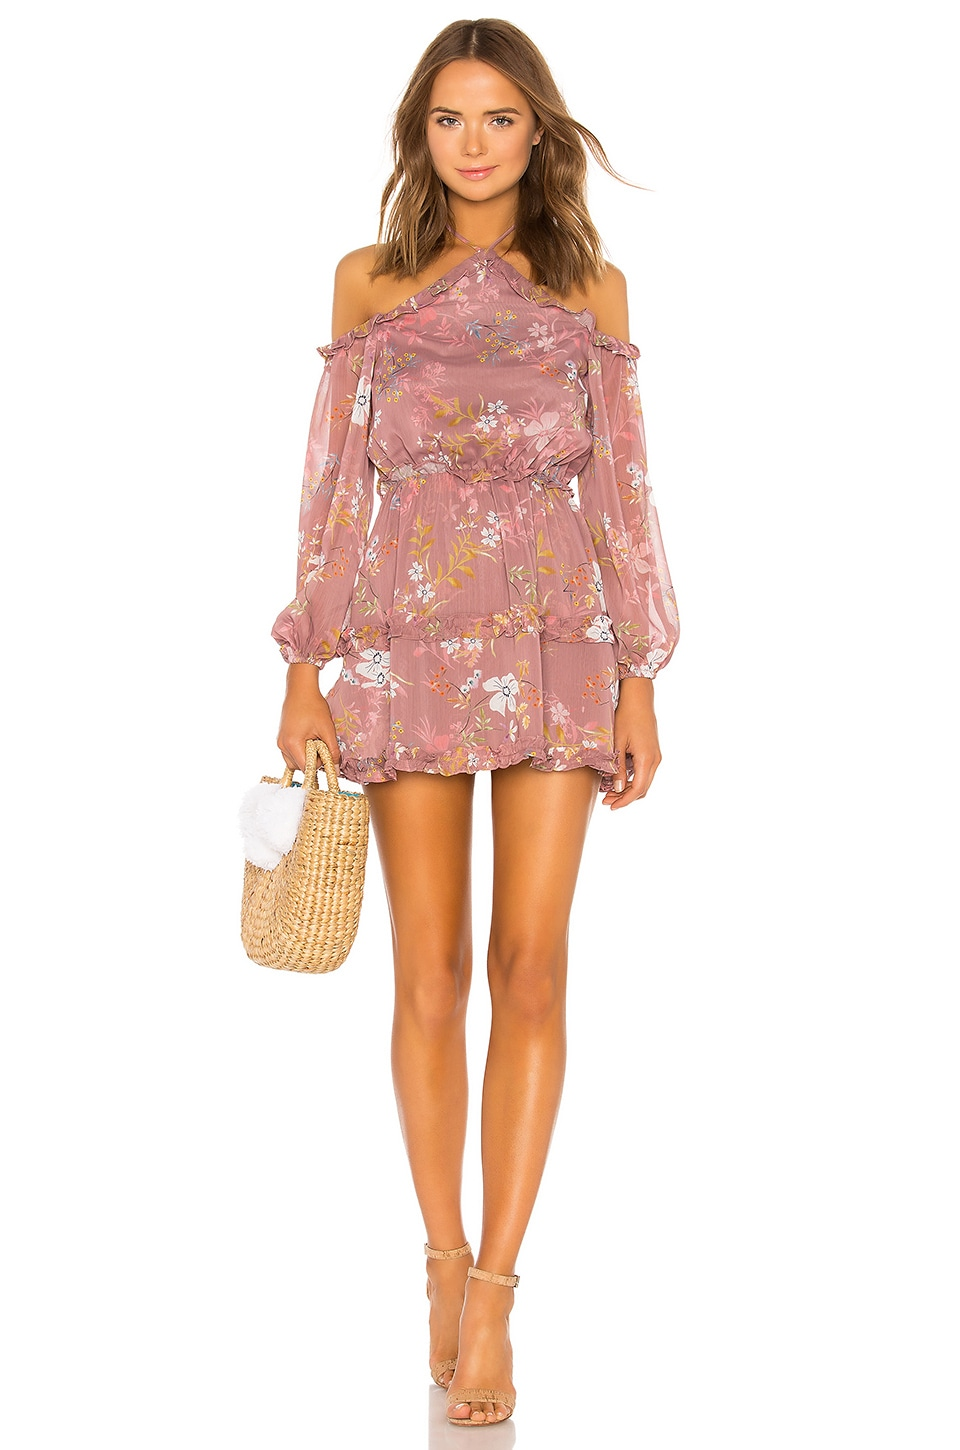 Tularosa Donna Dress in Mauve Floral